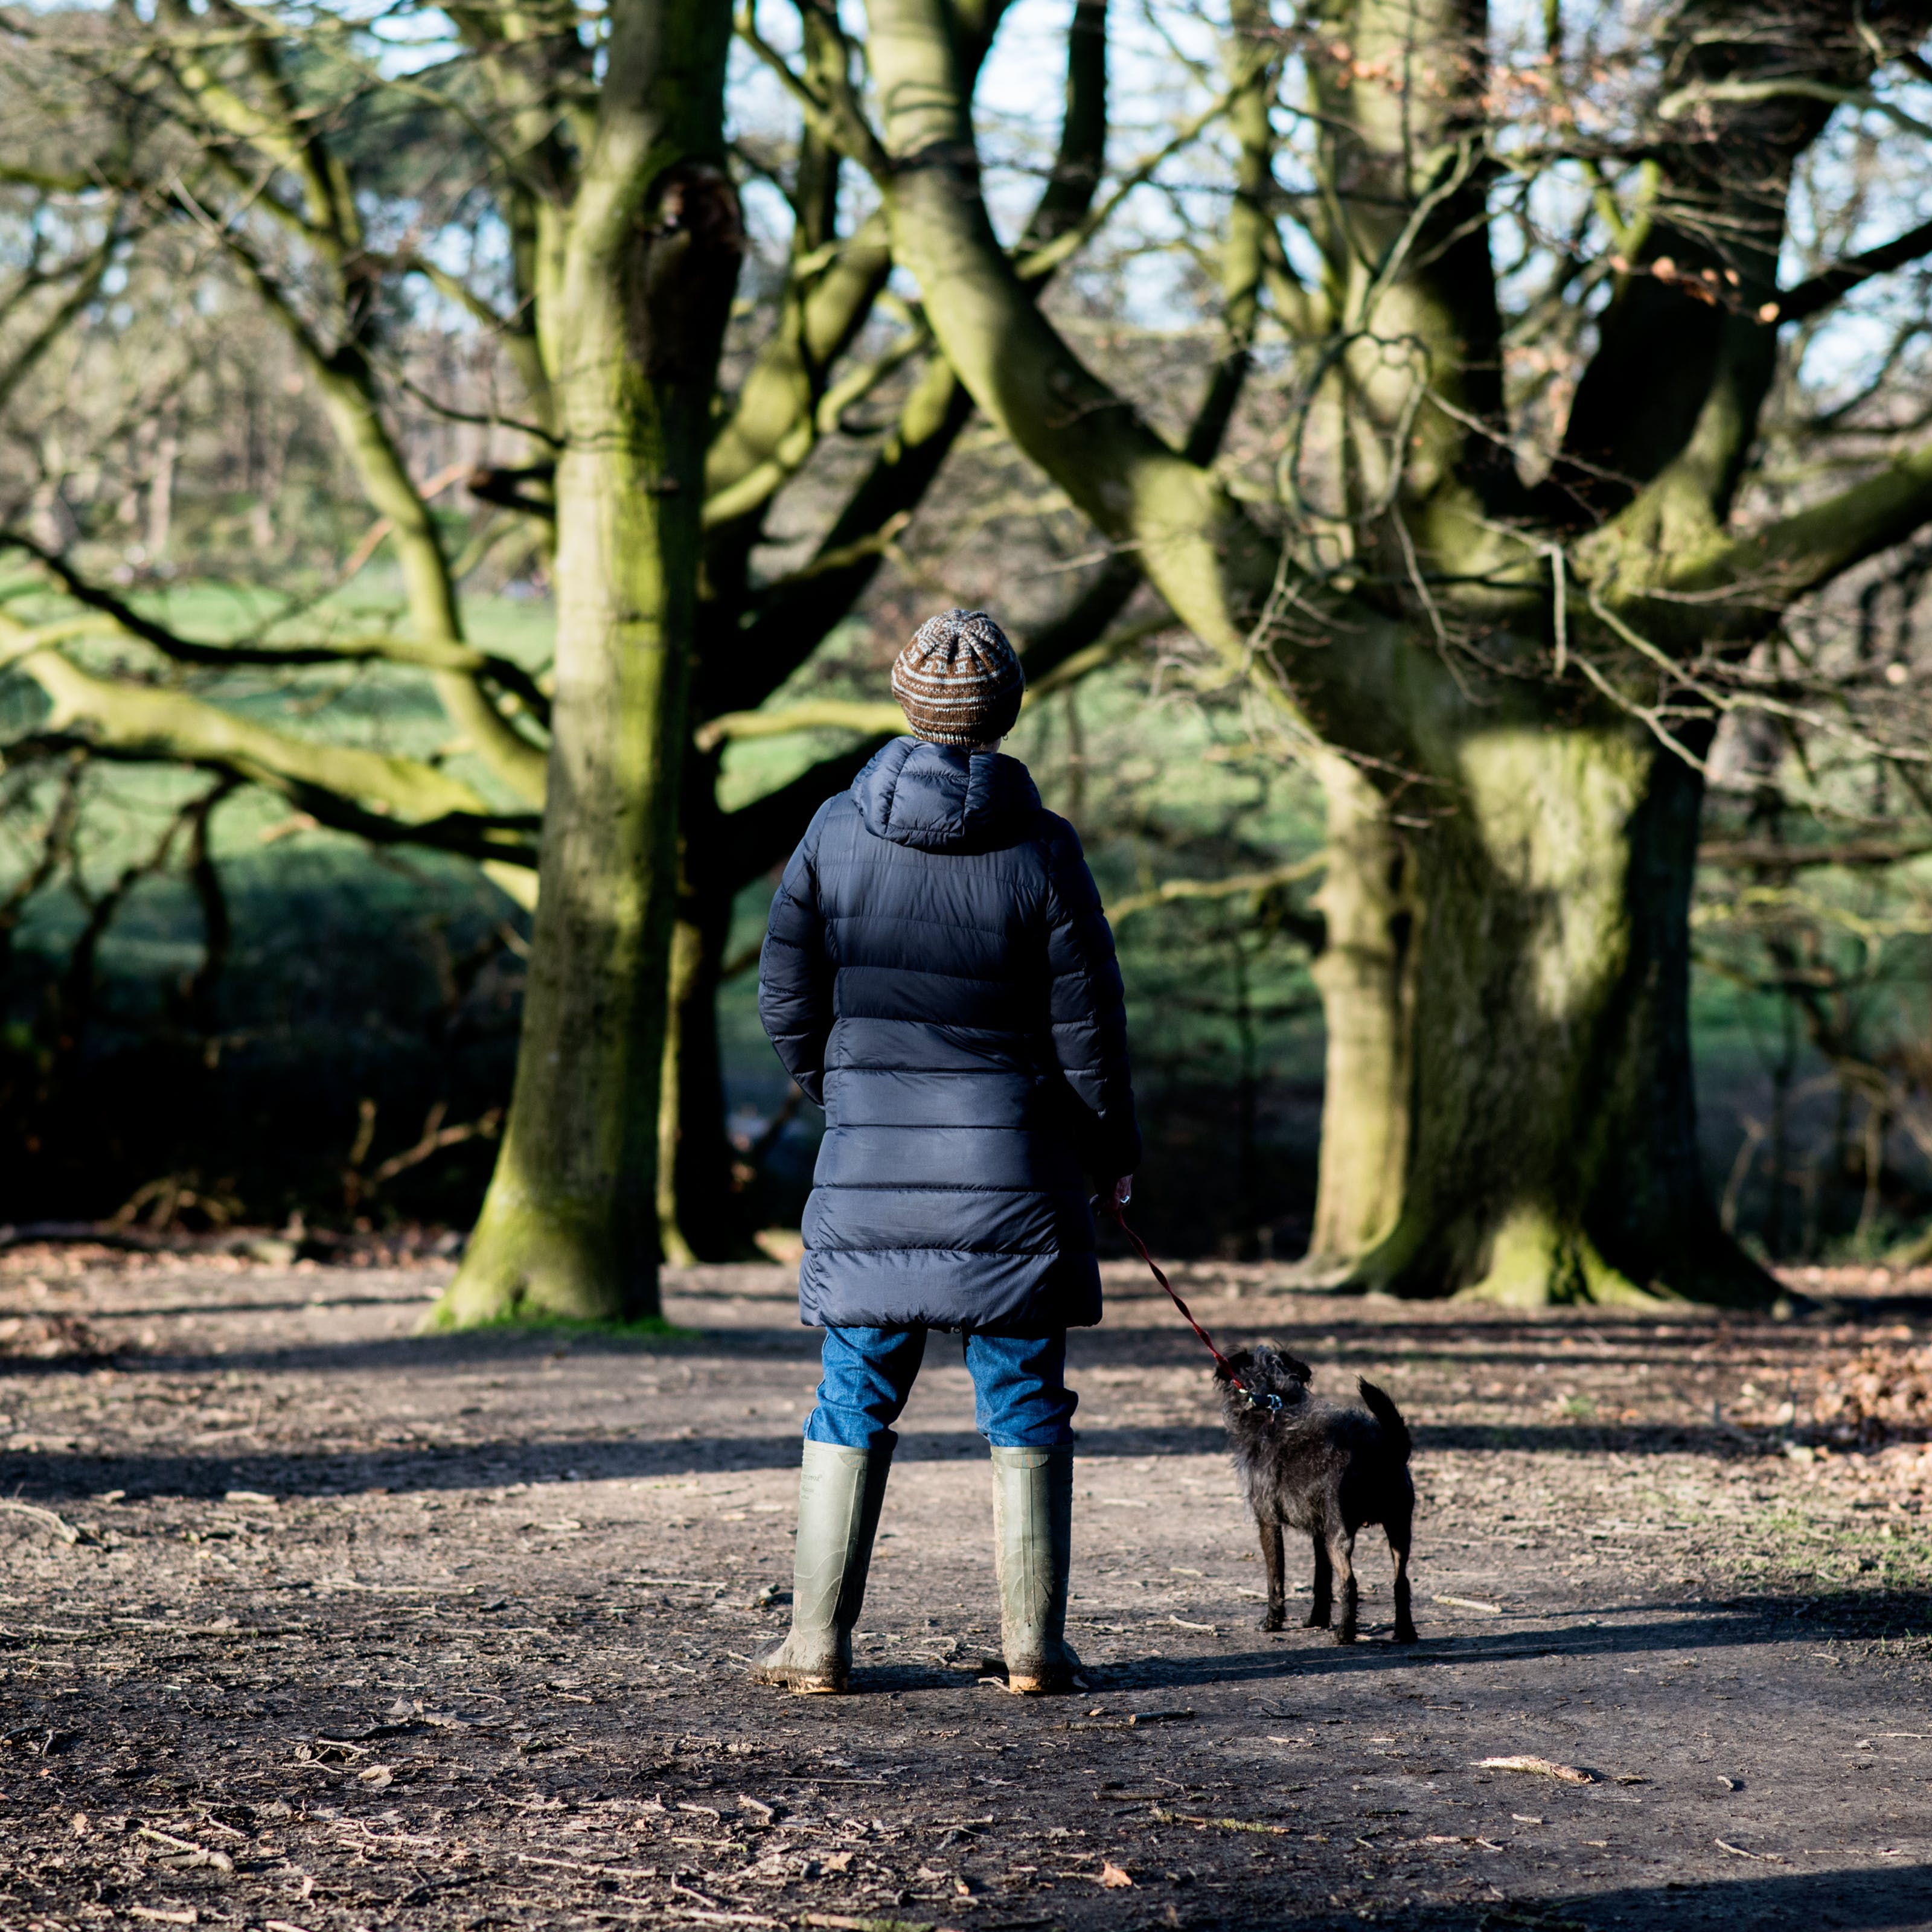 Photograph of a woman wearing a wooly hat, puffer coat and welly boots, standing with her back to the camera in wintery woodland setting. In her right hand she is holding a lead attached to a small black dog, also looking away from the camera. Low sunlight streaks through the trees from the left of frame.